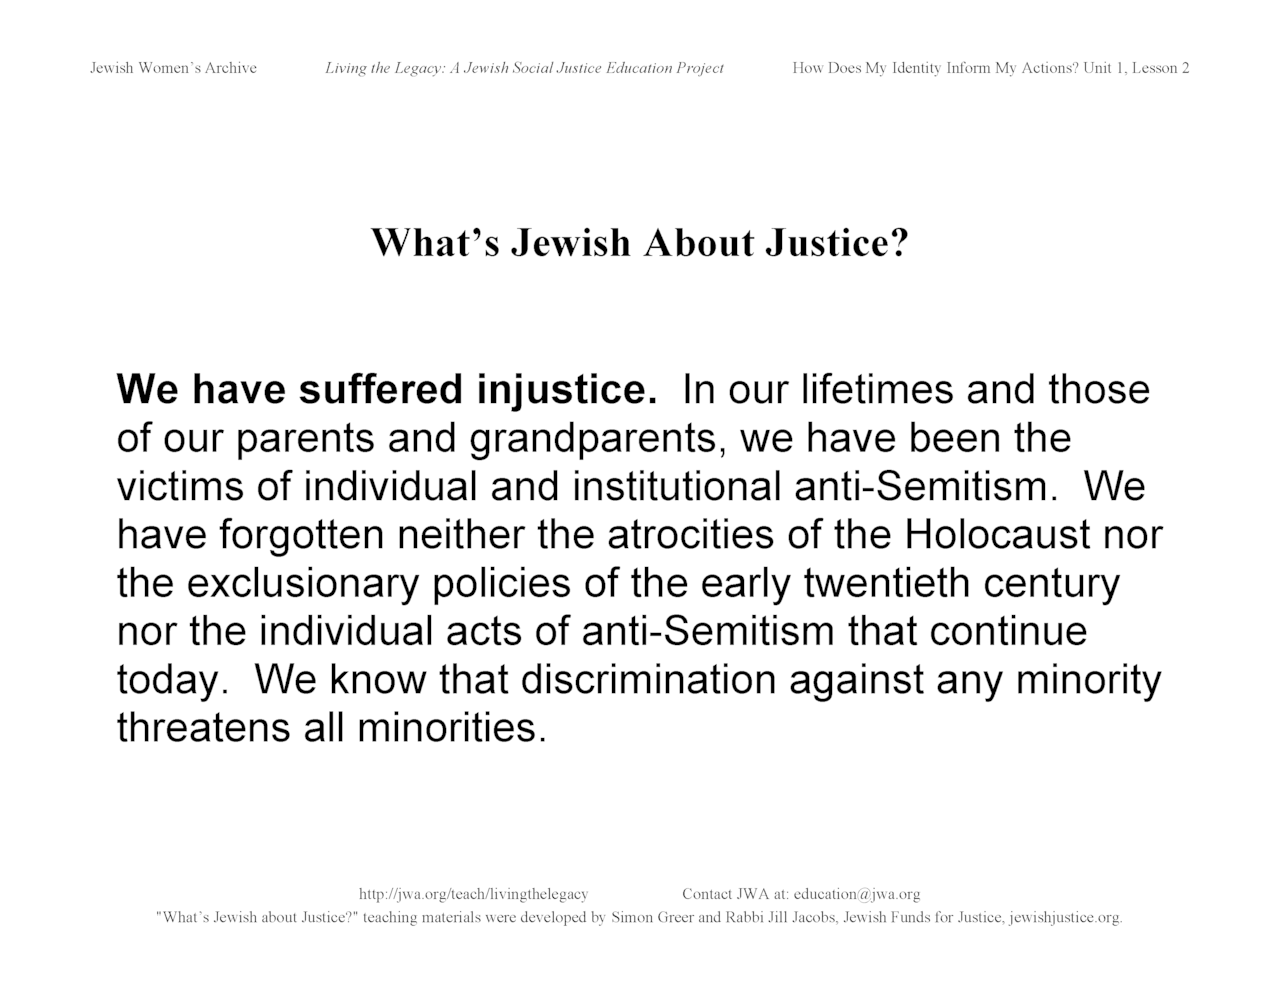 """What's Jewish About Justice?"" signs: We have suffered injustice"